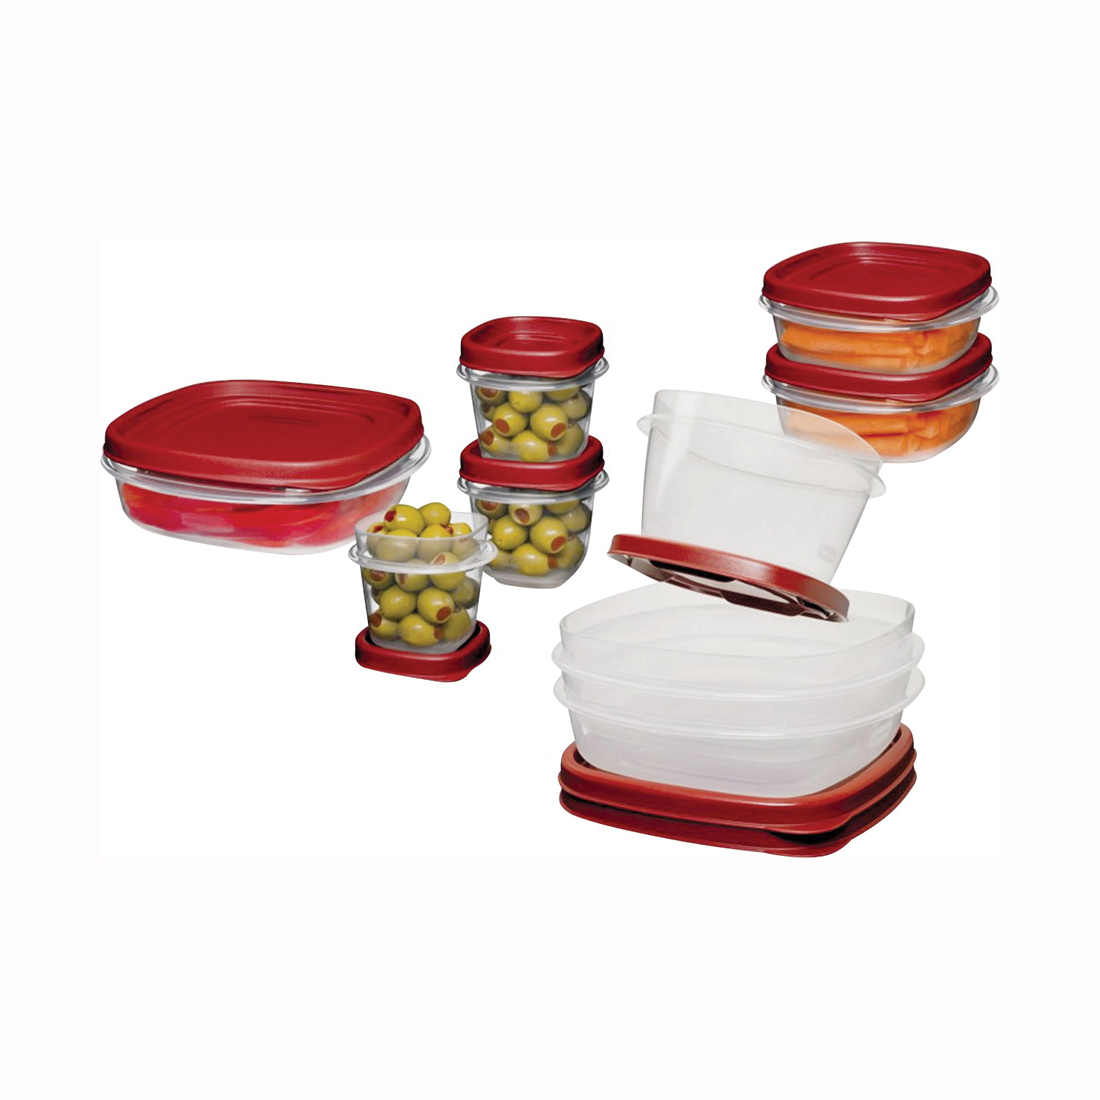 Picture of Rubbermaid 1777170 Food Container Set, 1/2, 1-1/4, 2, 3, 5 Cups Capacity, Plastic, Clear